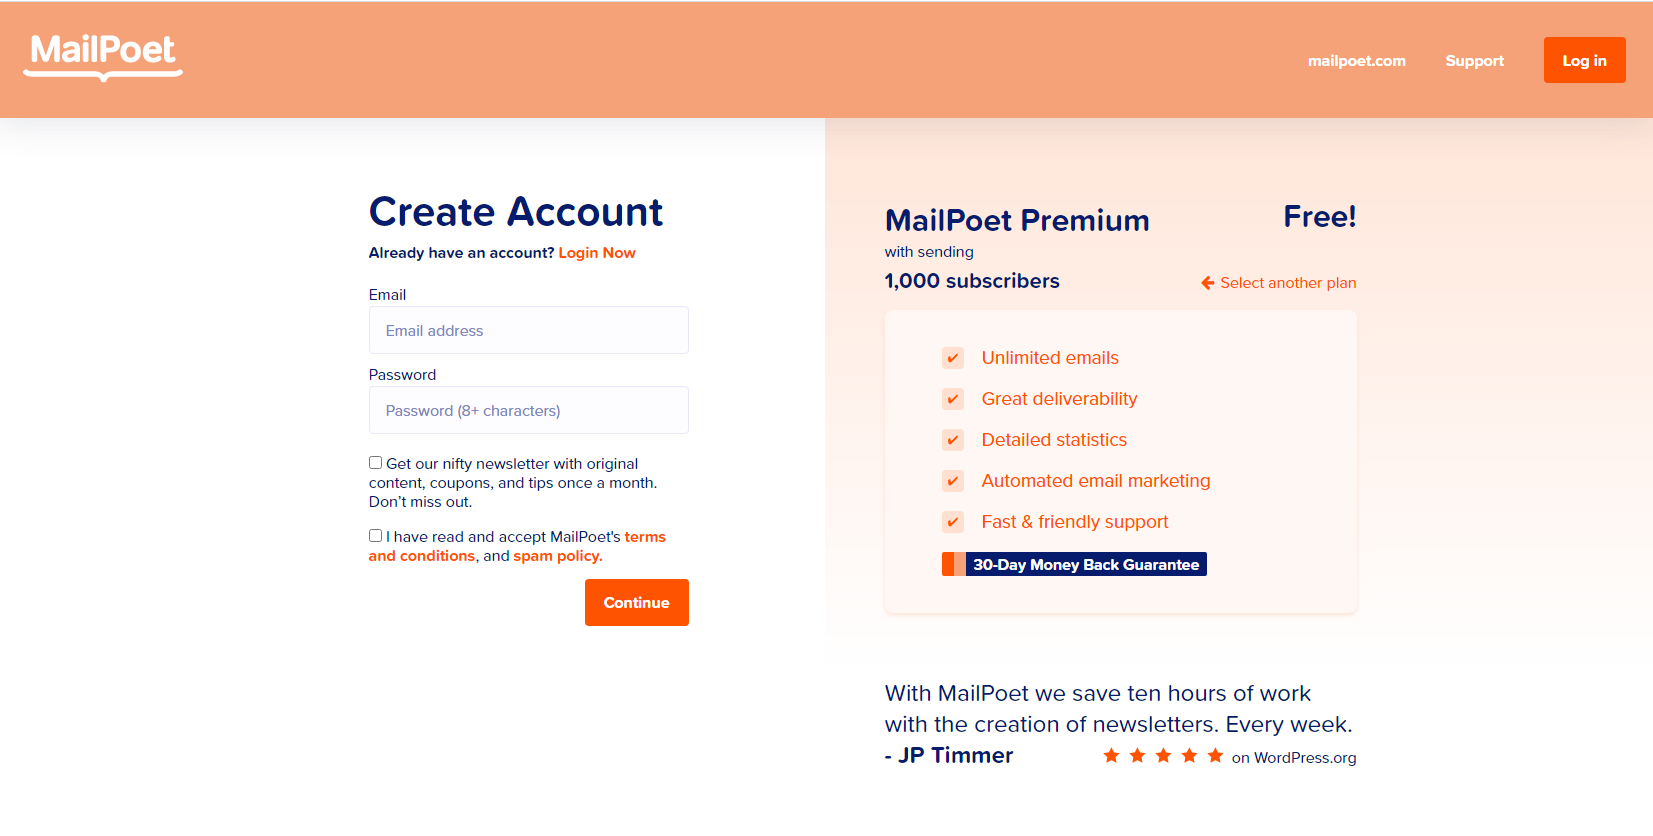 How to Create a MailPoet Account